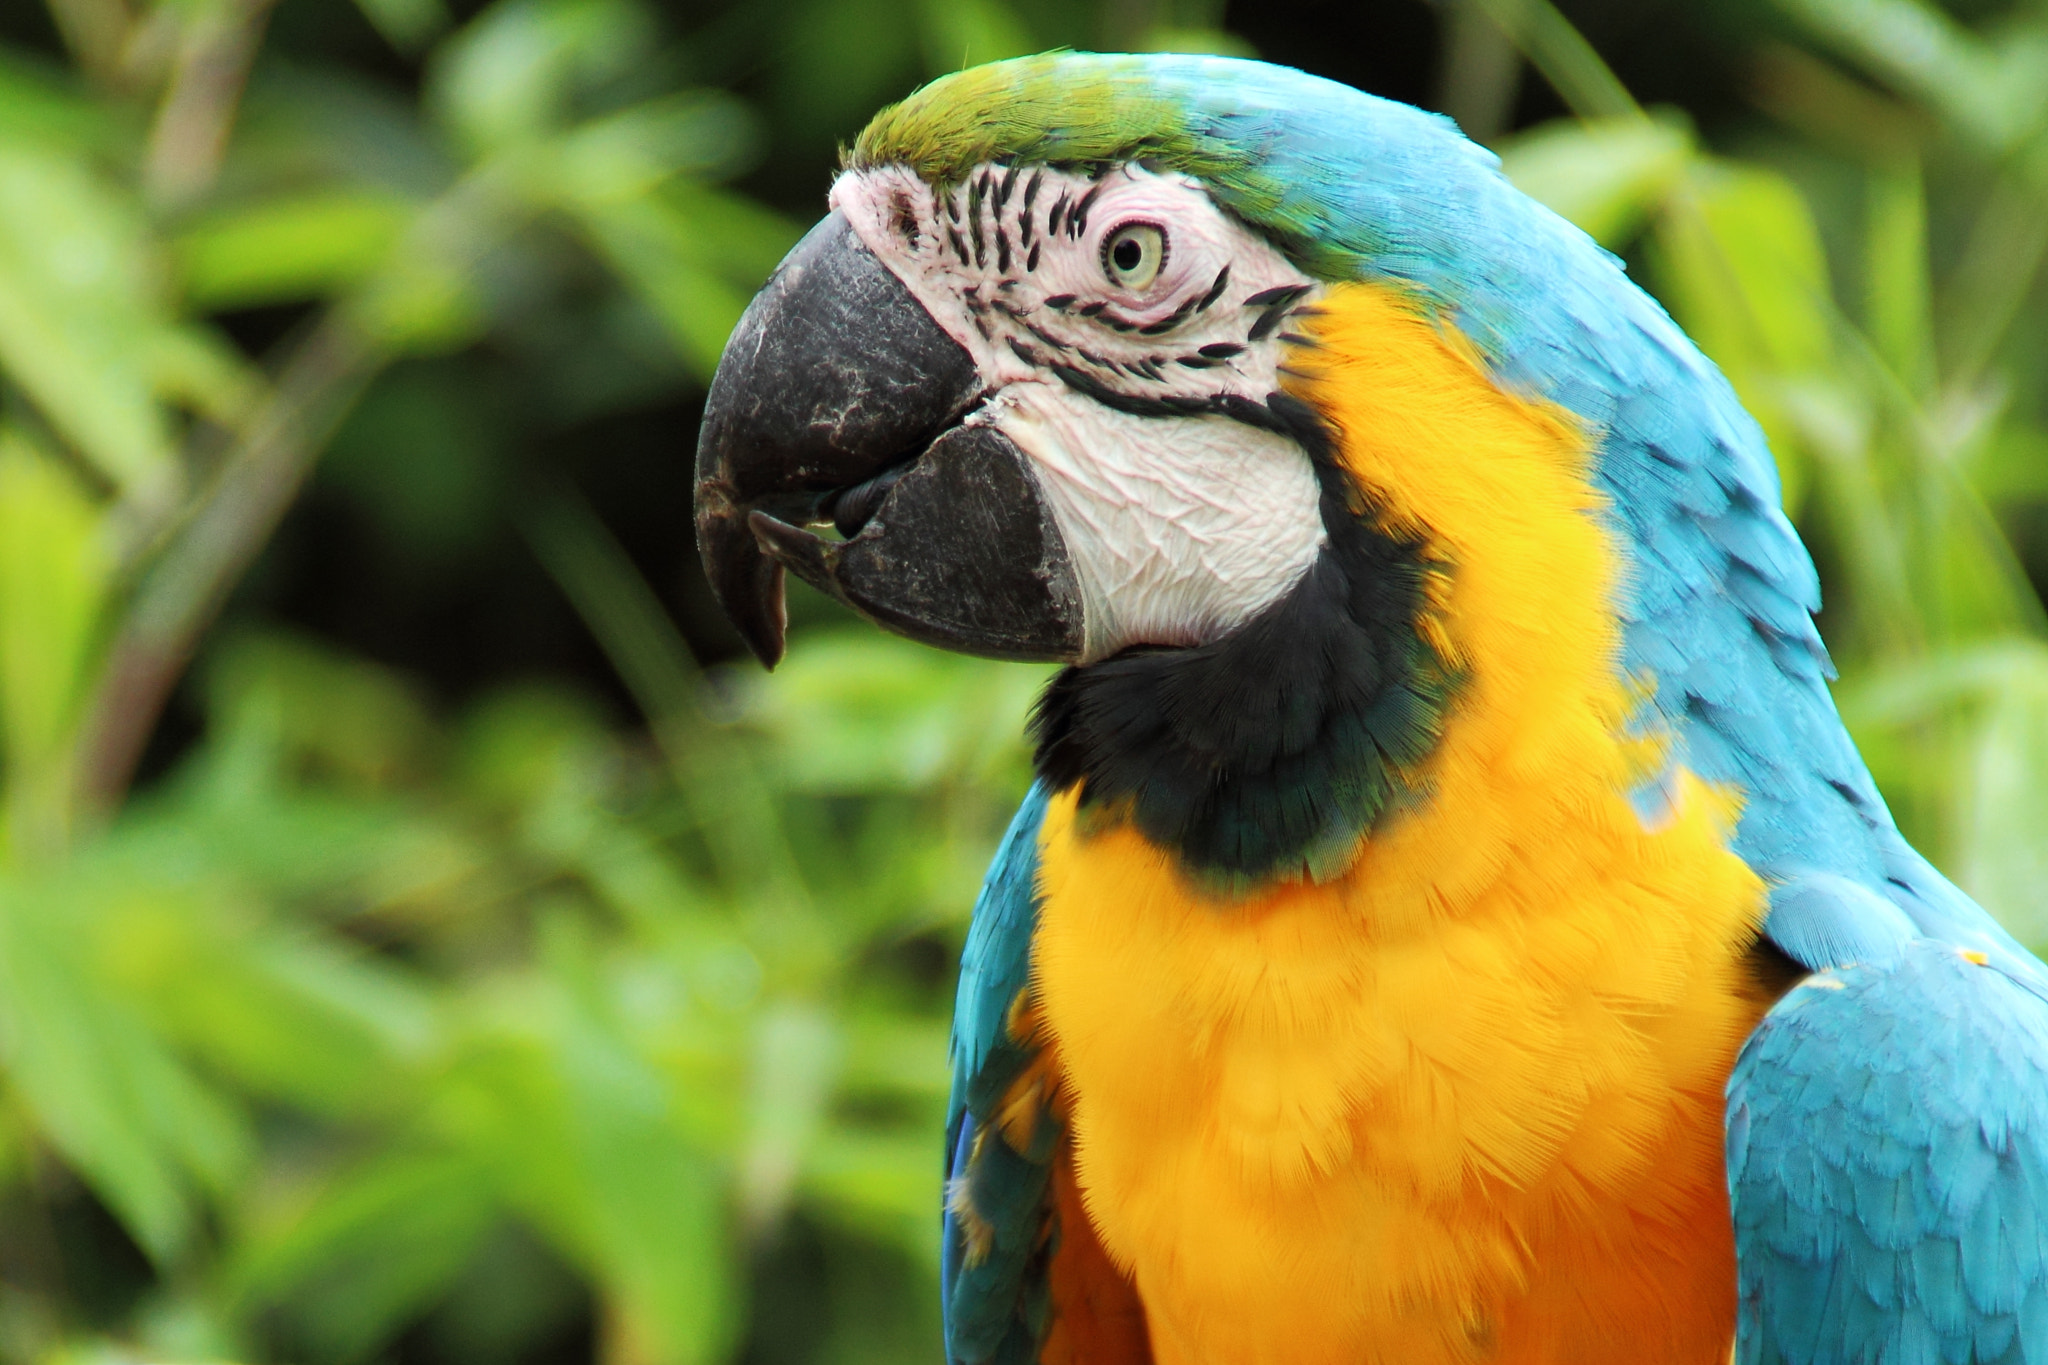 Photograph Parrot by M R on 500px